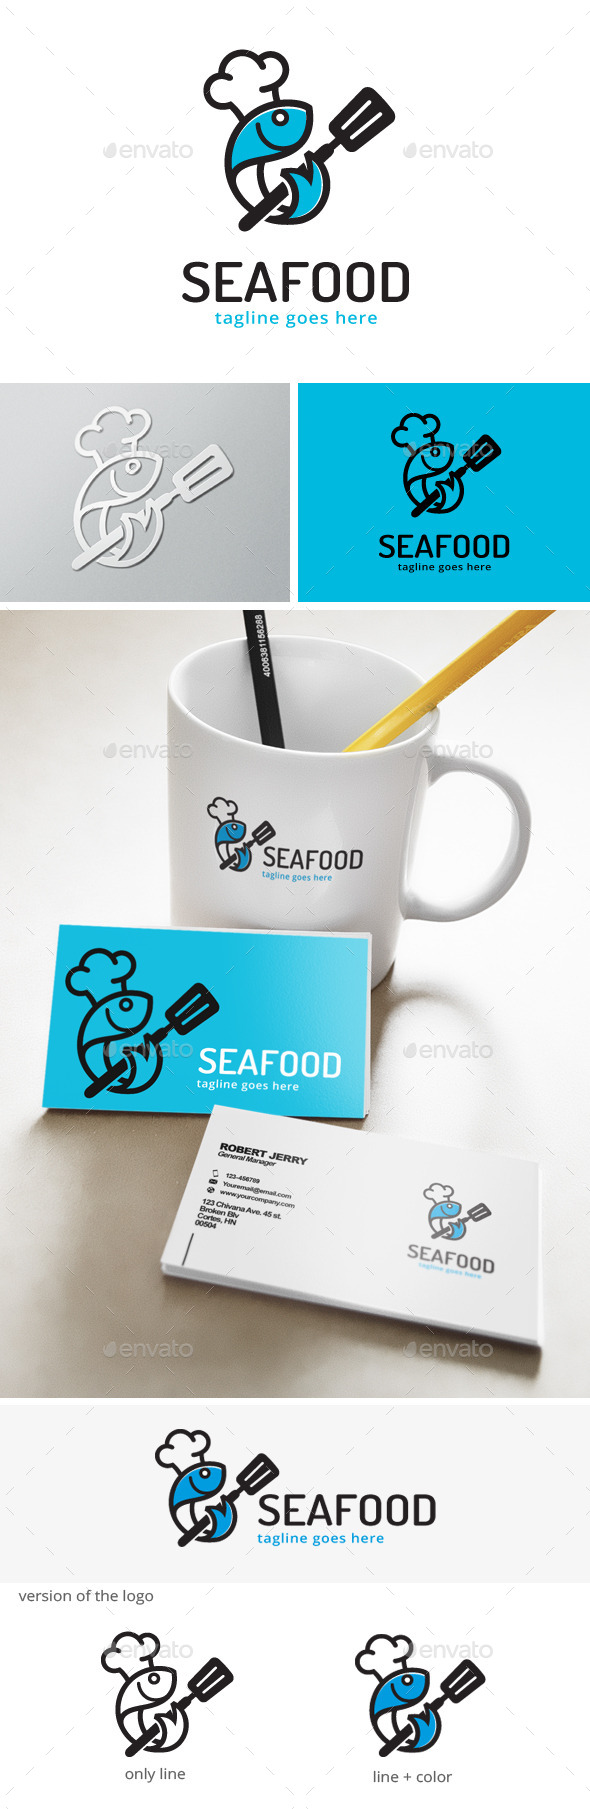 Sea Food - Fish Logo